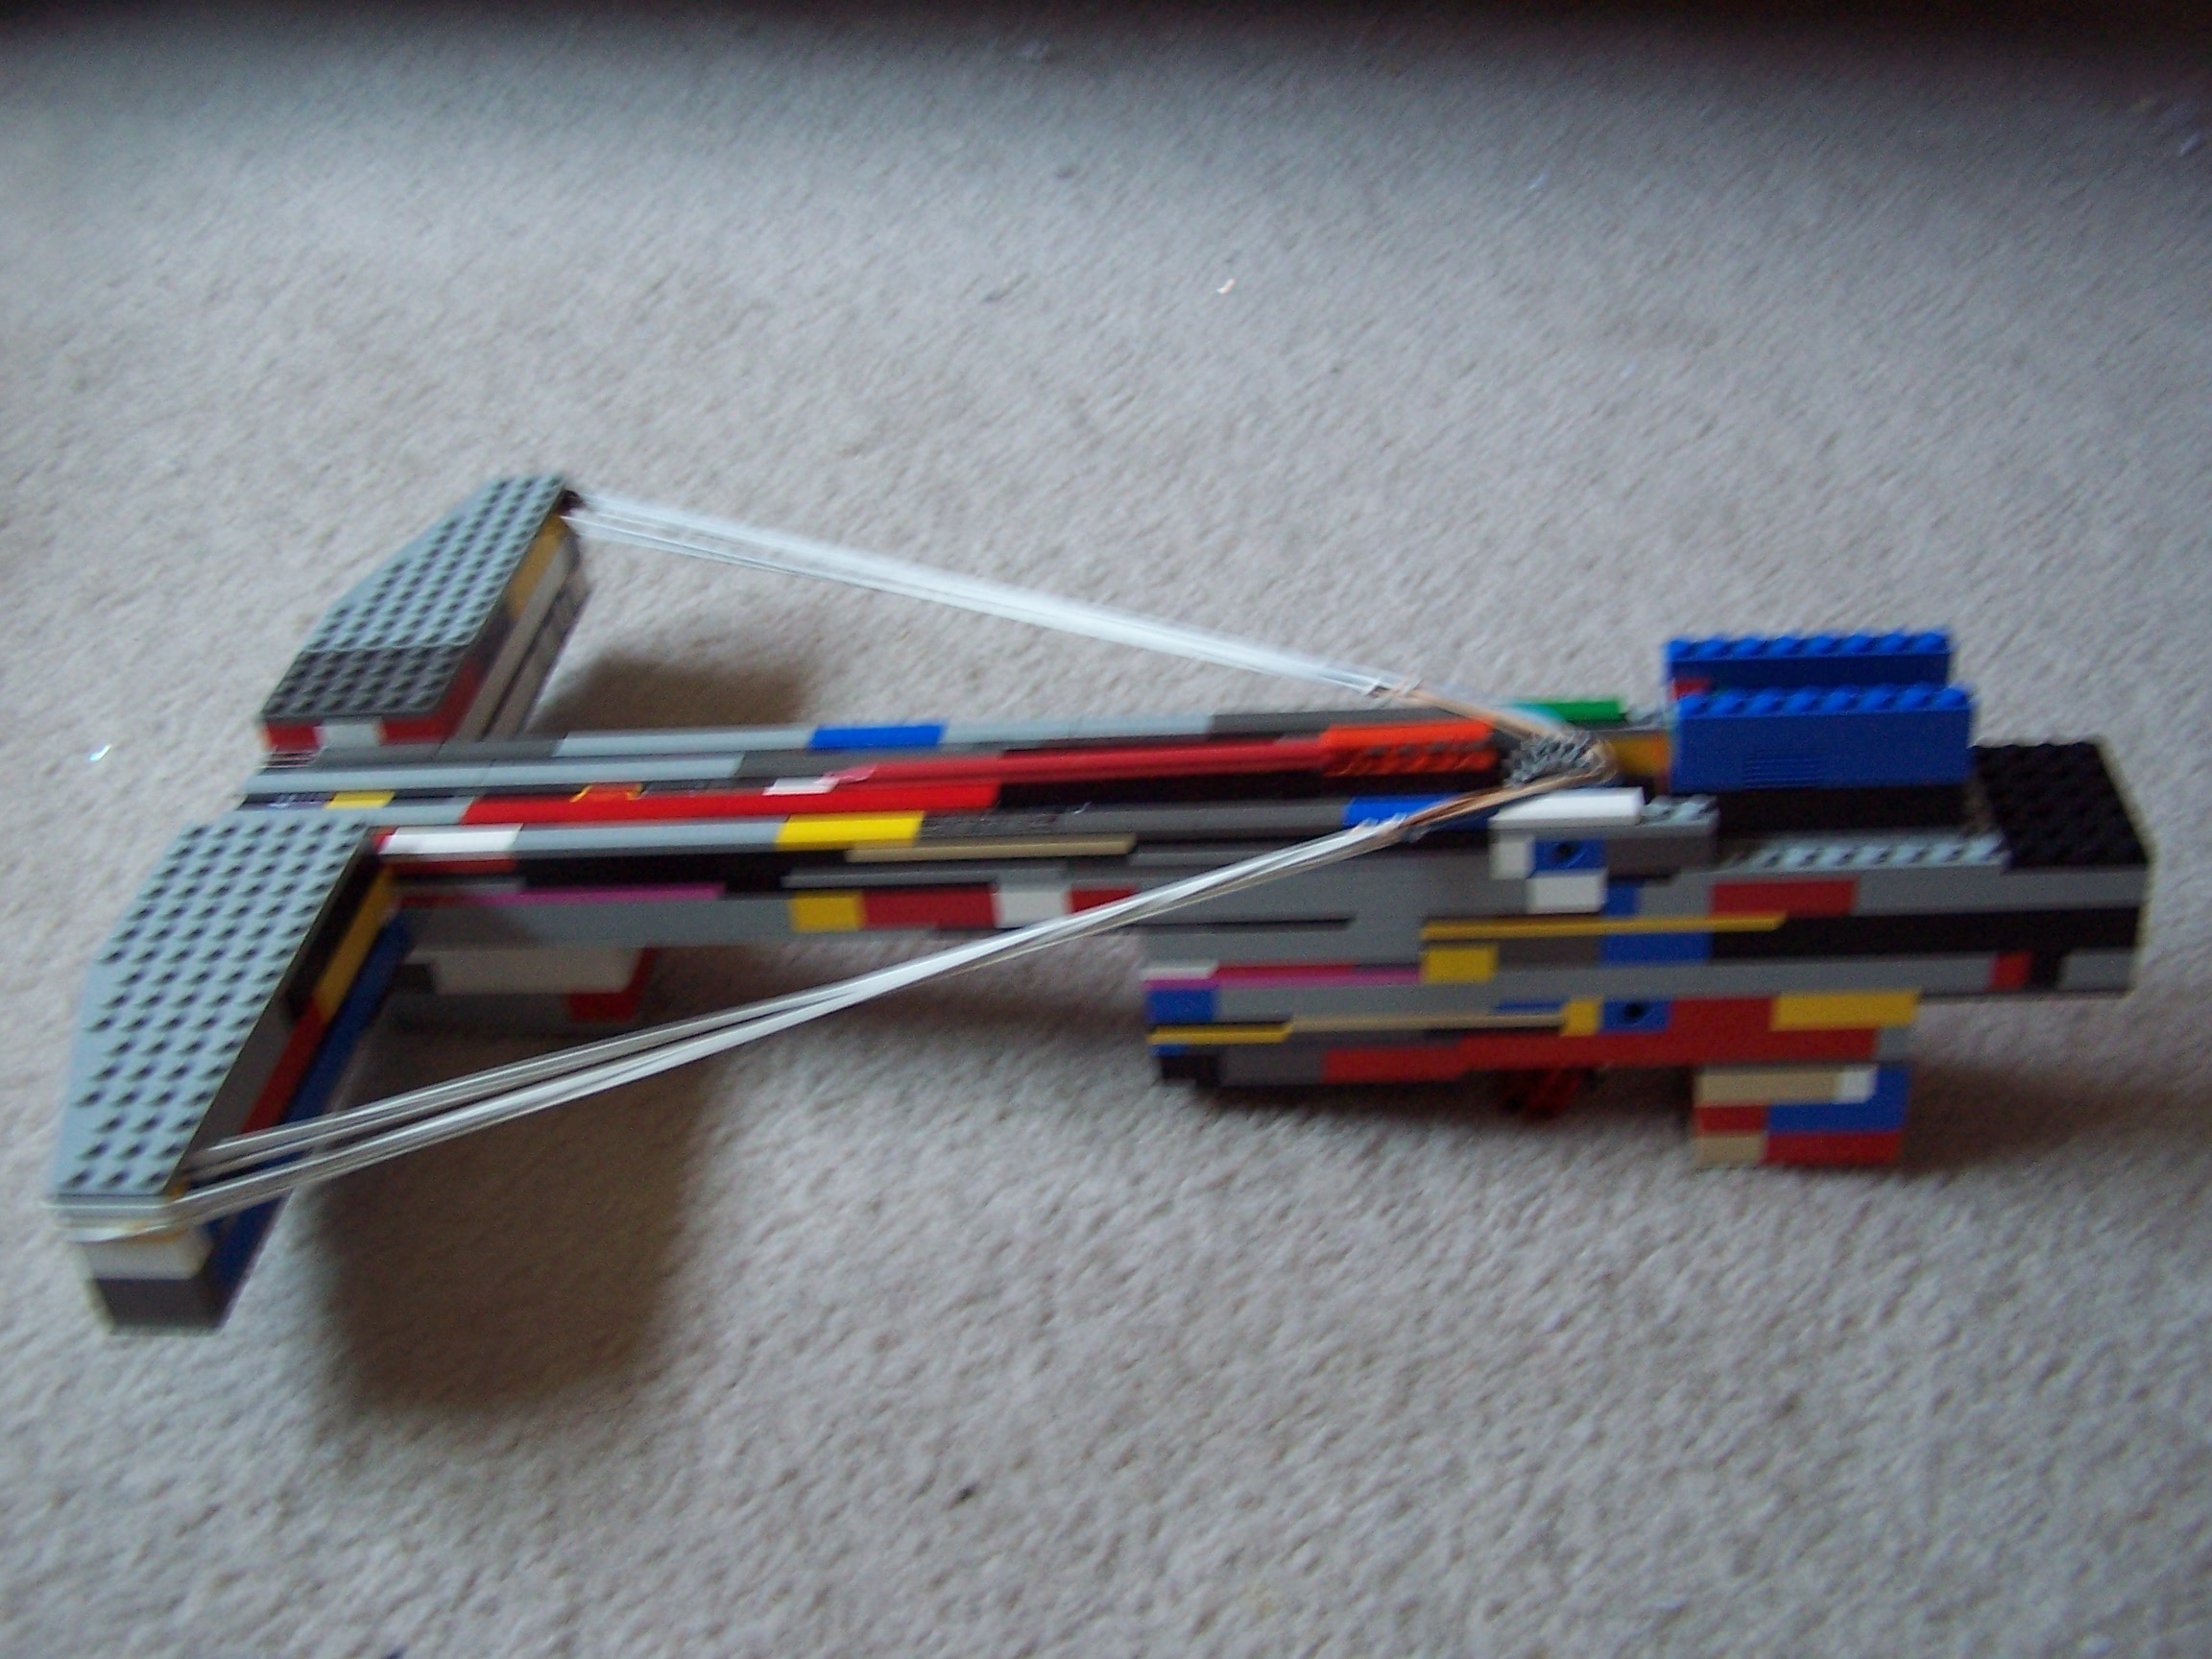 Picture of The C3.3 Lethal Armor-Piercing Lego Crossbow